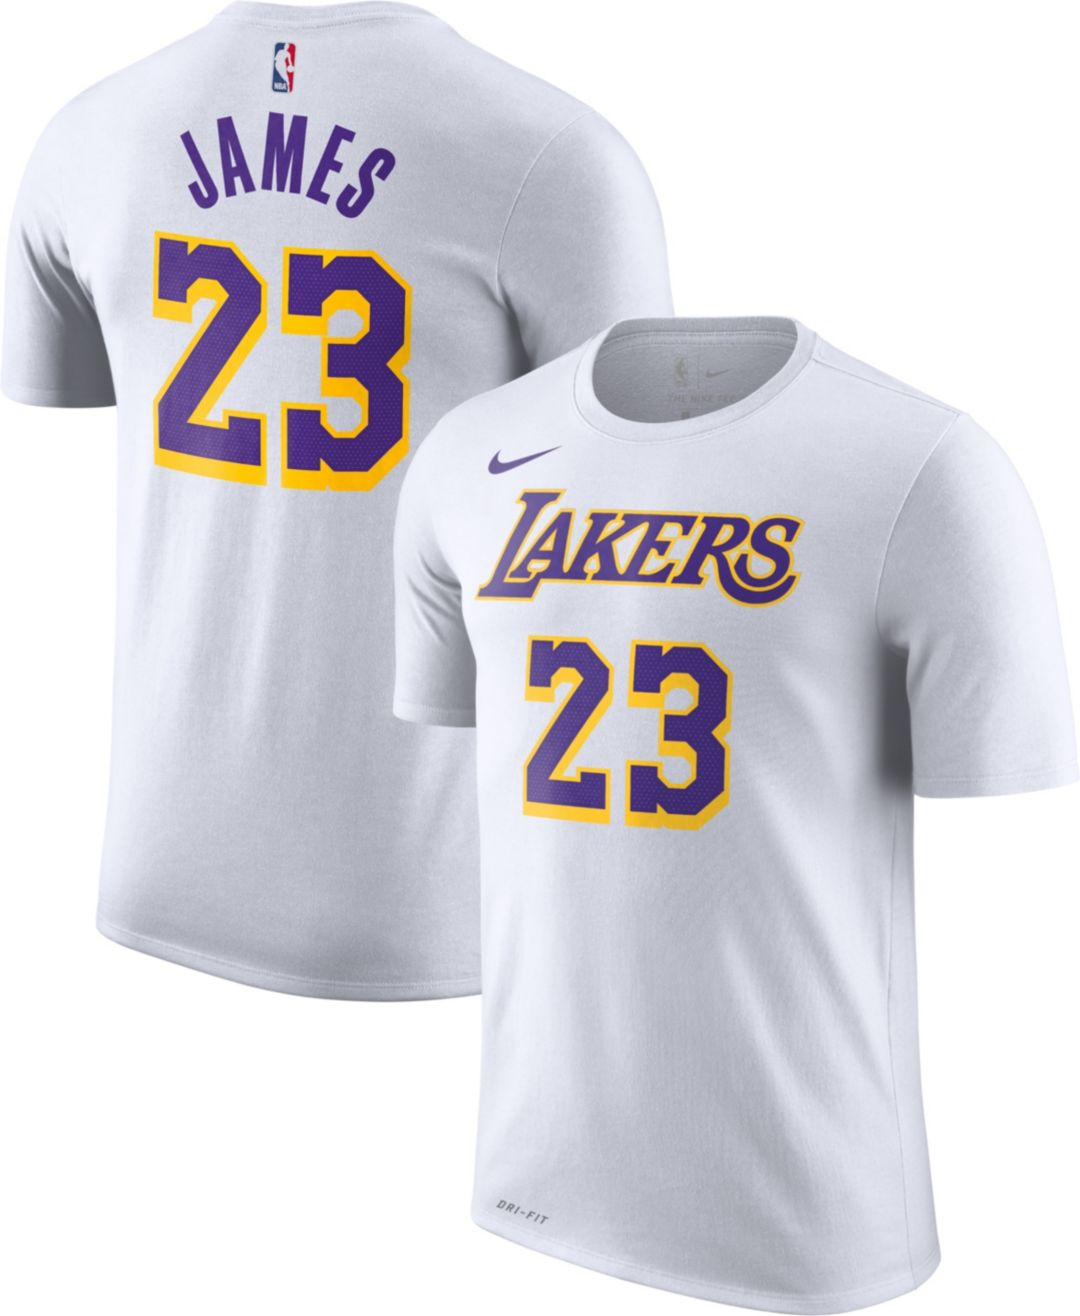 new styles defa5 d4a76 Nike Youth Los Angeles Lakers LeBron James Dri-FIT White T-Shirt